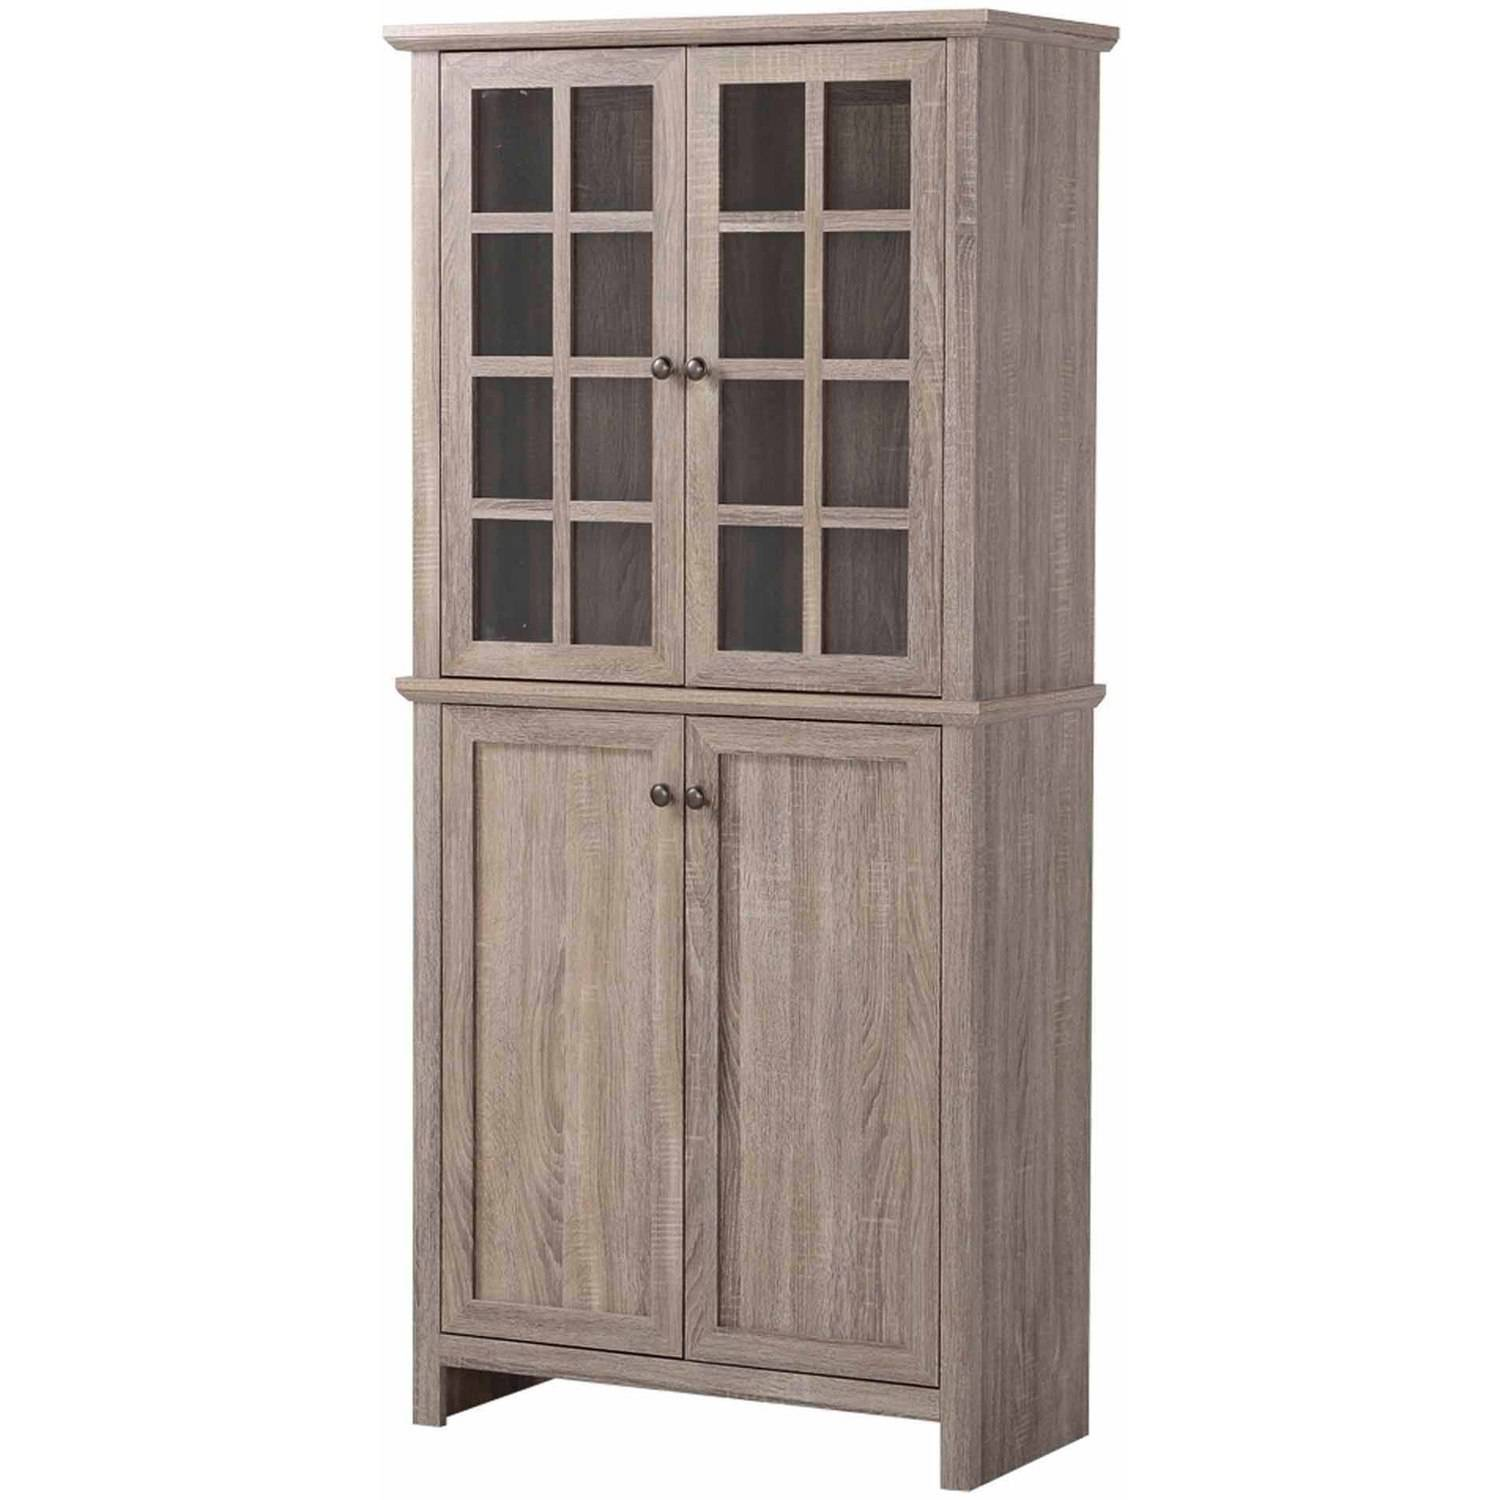 Homestar 2 Door Glass Storage Cabinet Reclaimed Wood Walmart